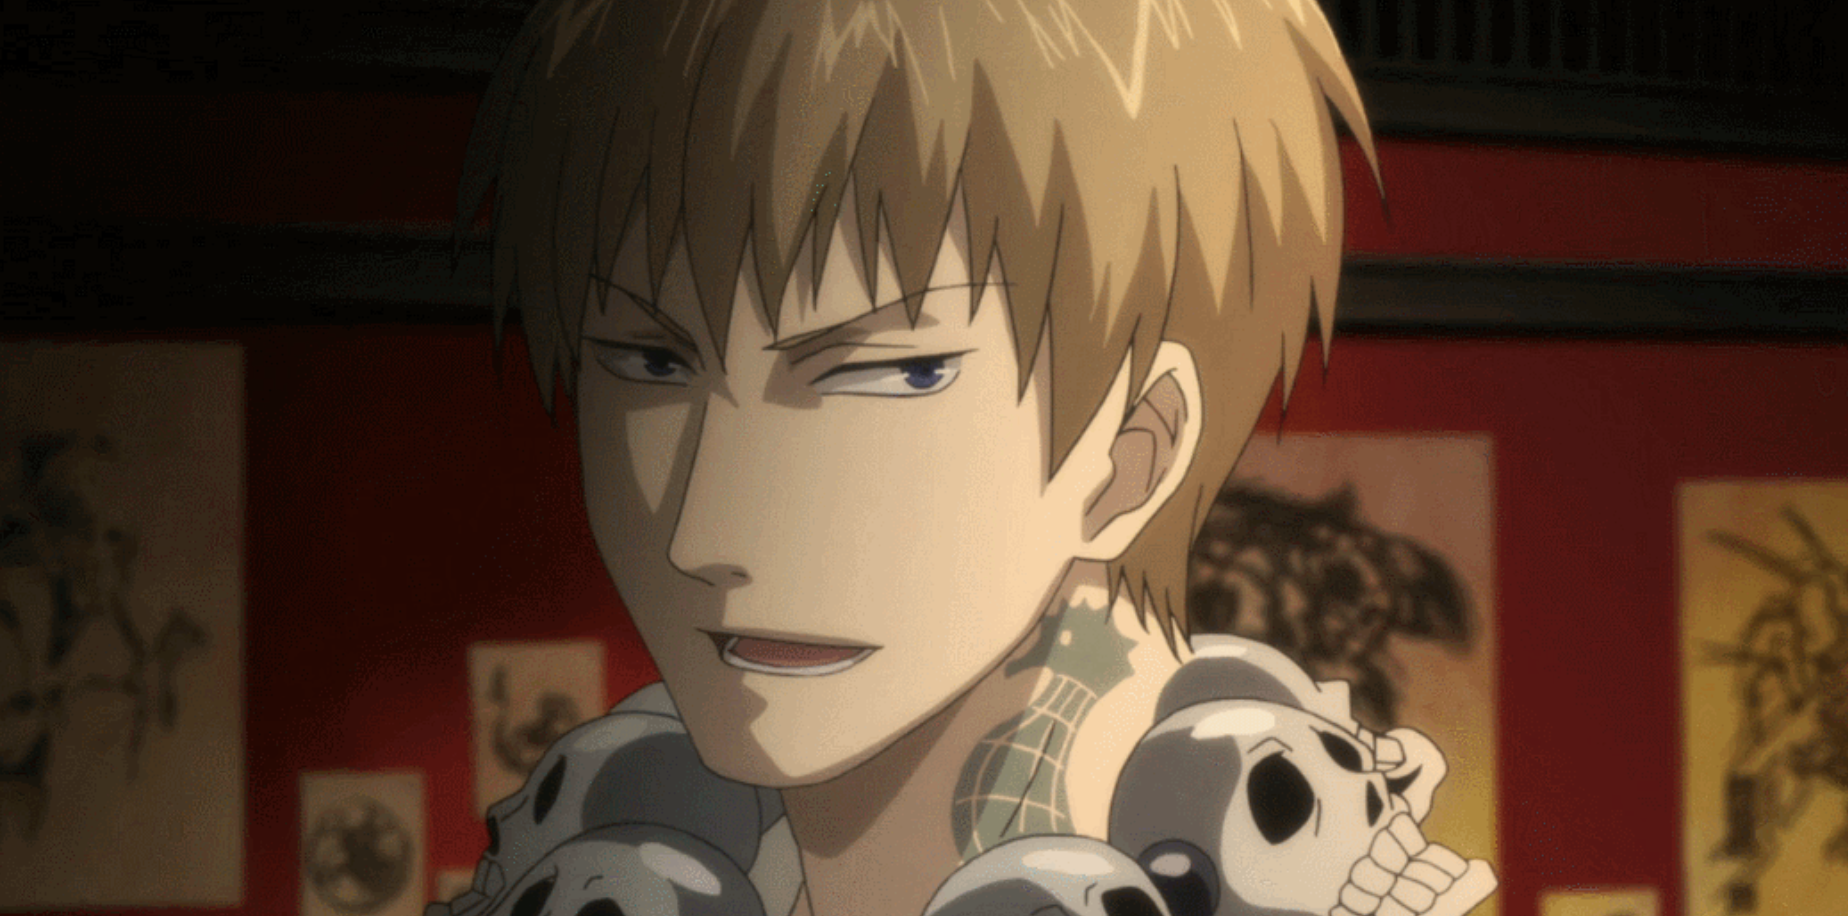 latest?cb=20140817232918 The Cast for DRAMAtical Murder English Dub Revealed